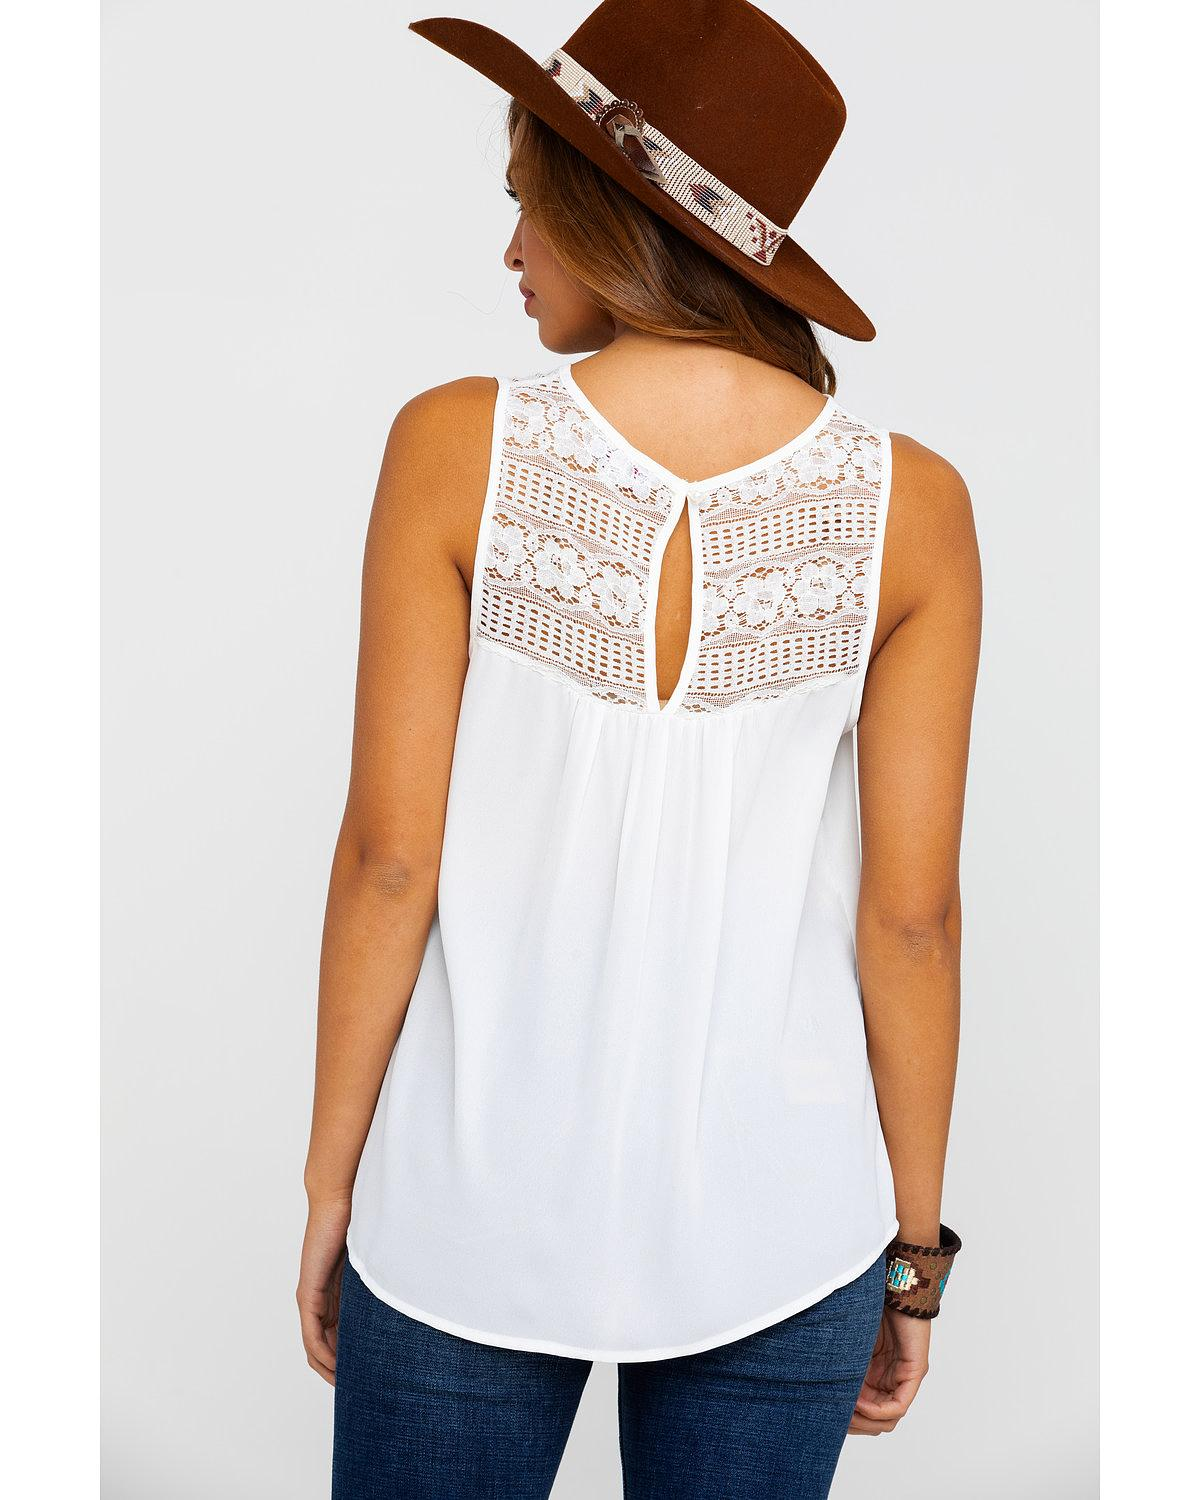 Red Label by Panhandle Women/'s Babydoll Lace Criss Cross Tank Top J7-1304-WHT